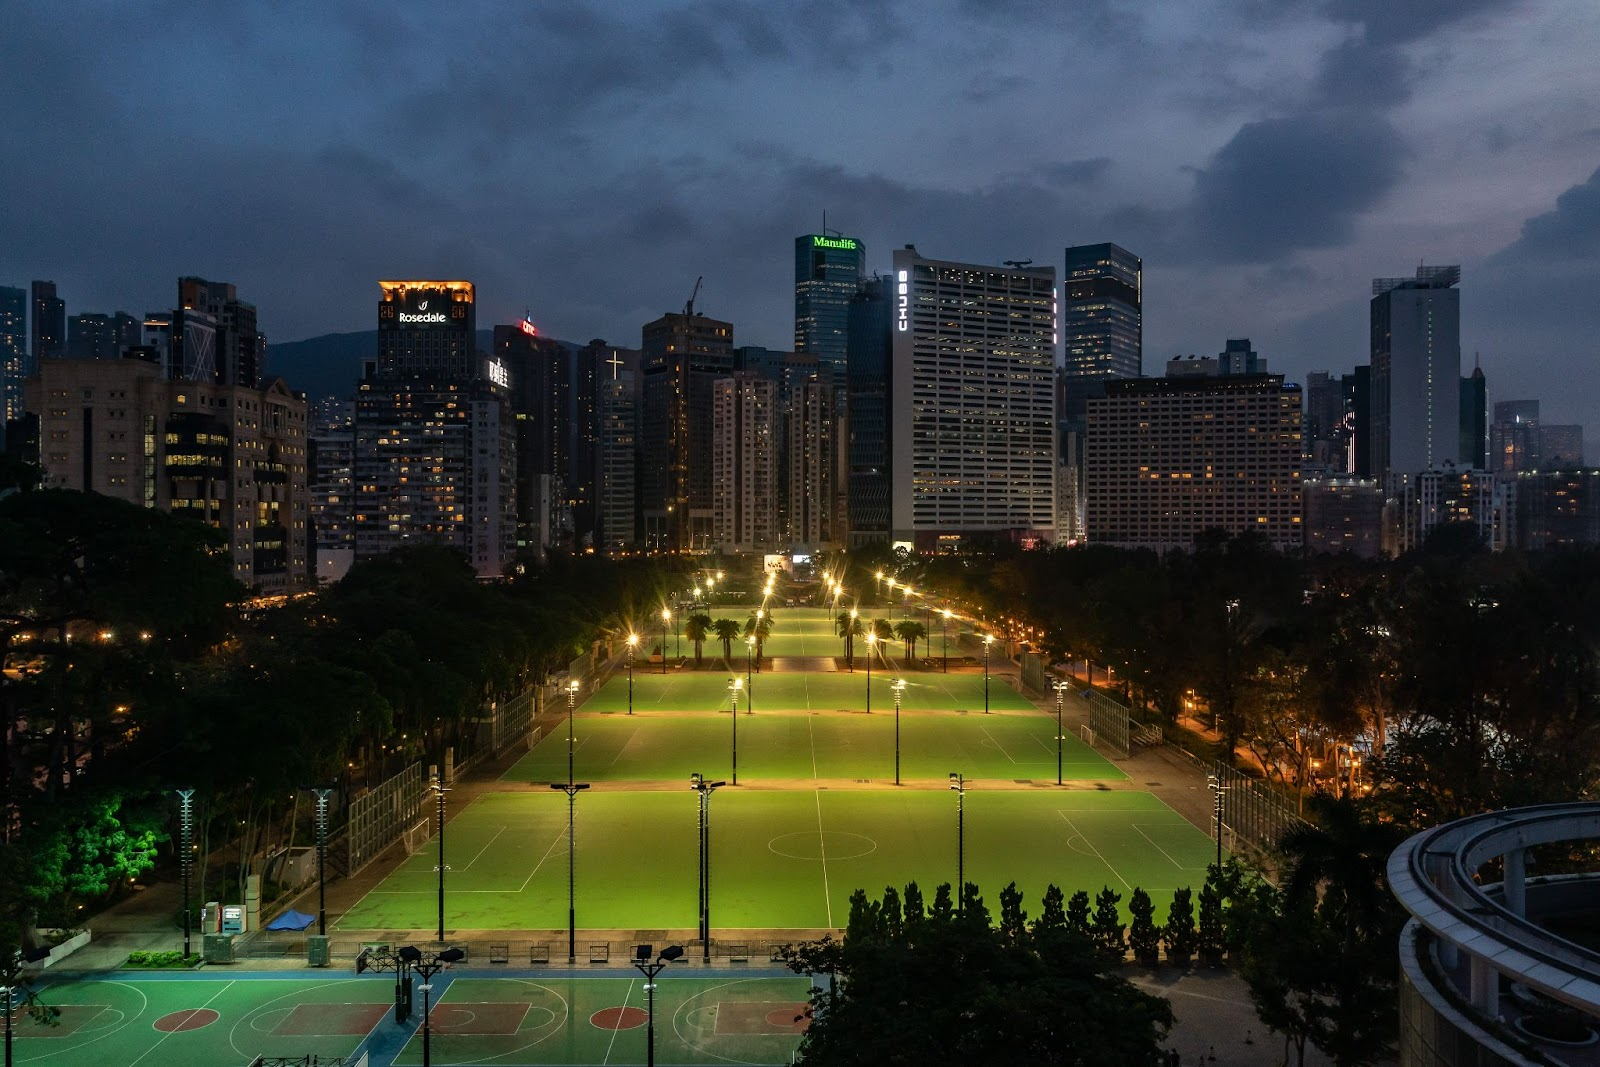 Lights illuminate the closed-off football pitches at Victoria Park, after police closed the venue where Hong Kong people traditionally gather annually to mourn the victims of China's Tiananmen Square massacre in 1989, in the Causeway Bay district on June 4, 2021 in Hong Kong. The authorities have banned the gathering as they cite the coronavirus pandemic as an excuse, vowing to stamp out any protests on the anniversary.